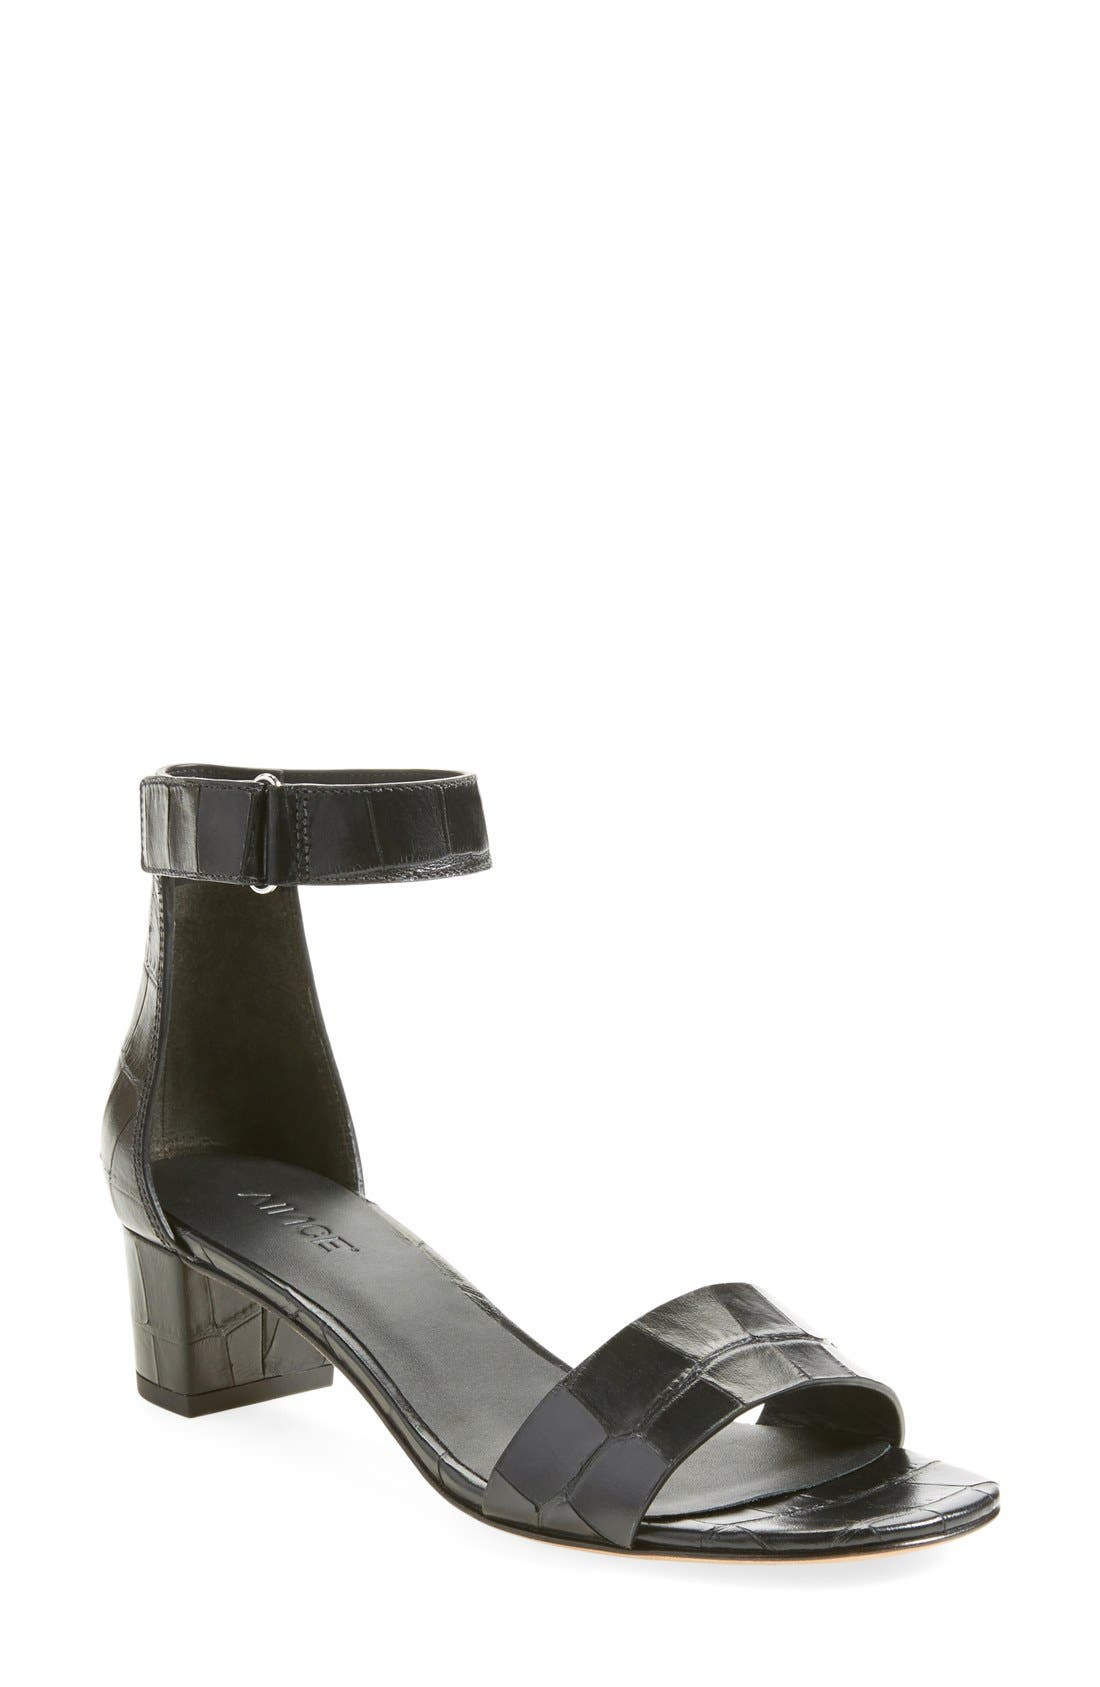 Alternate Image 1 Selected - Vince 'Rita' Leather Ankle Strap Sandal (Women)